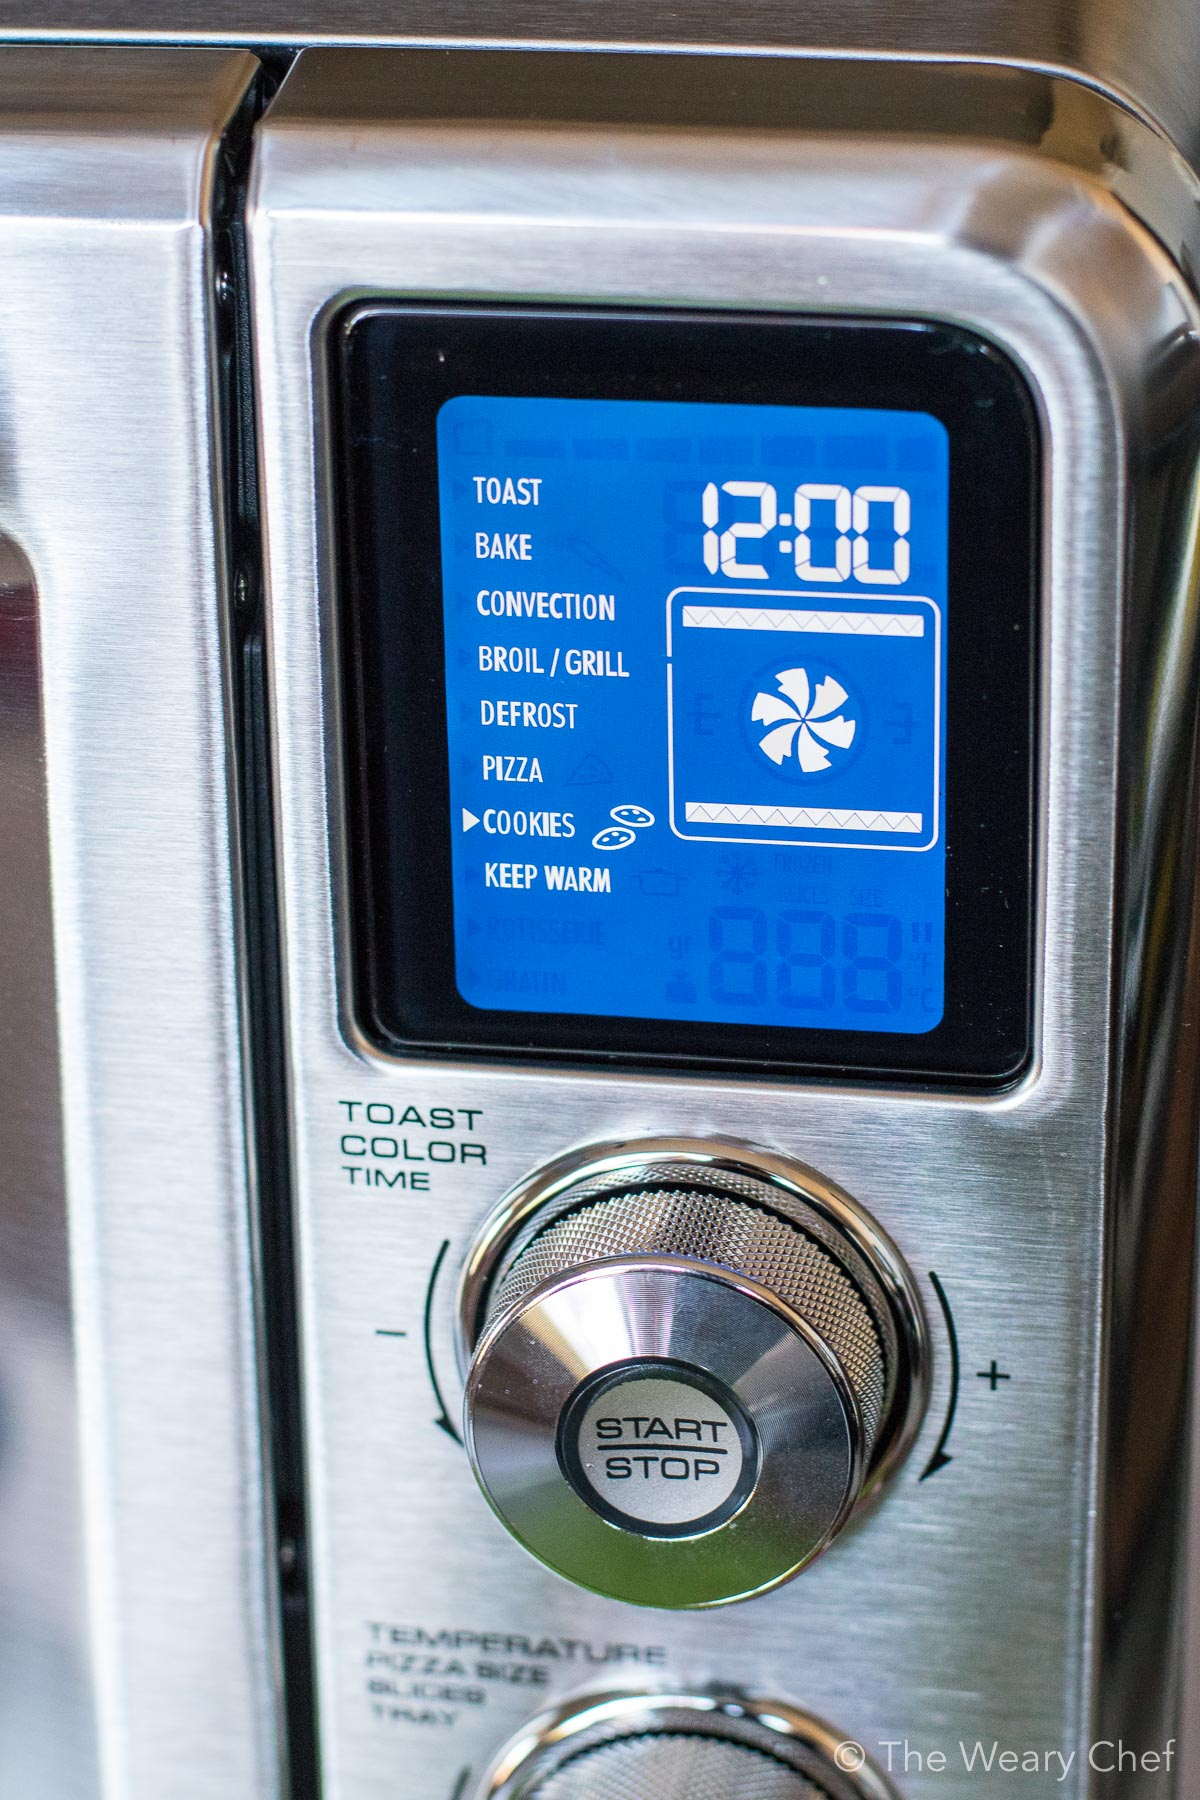 6 Reasons You Need a Countertop Oven #toasteroven #kitchen #appliance